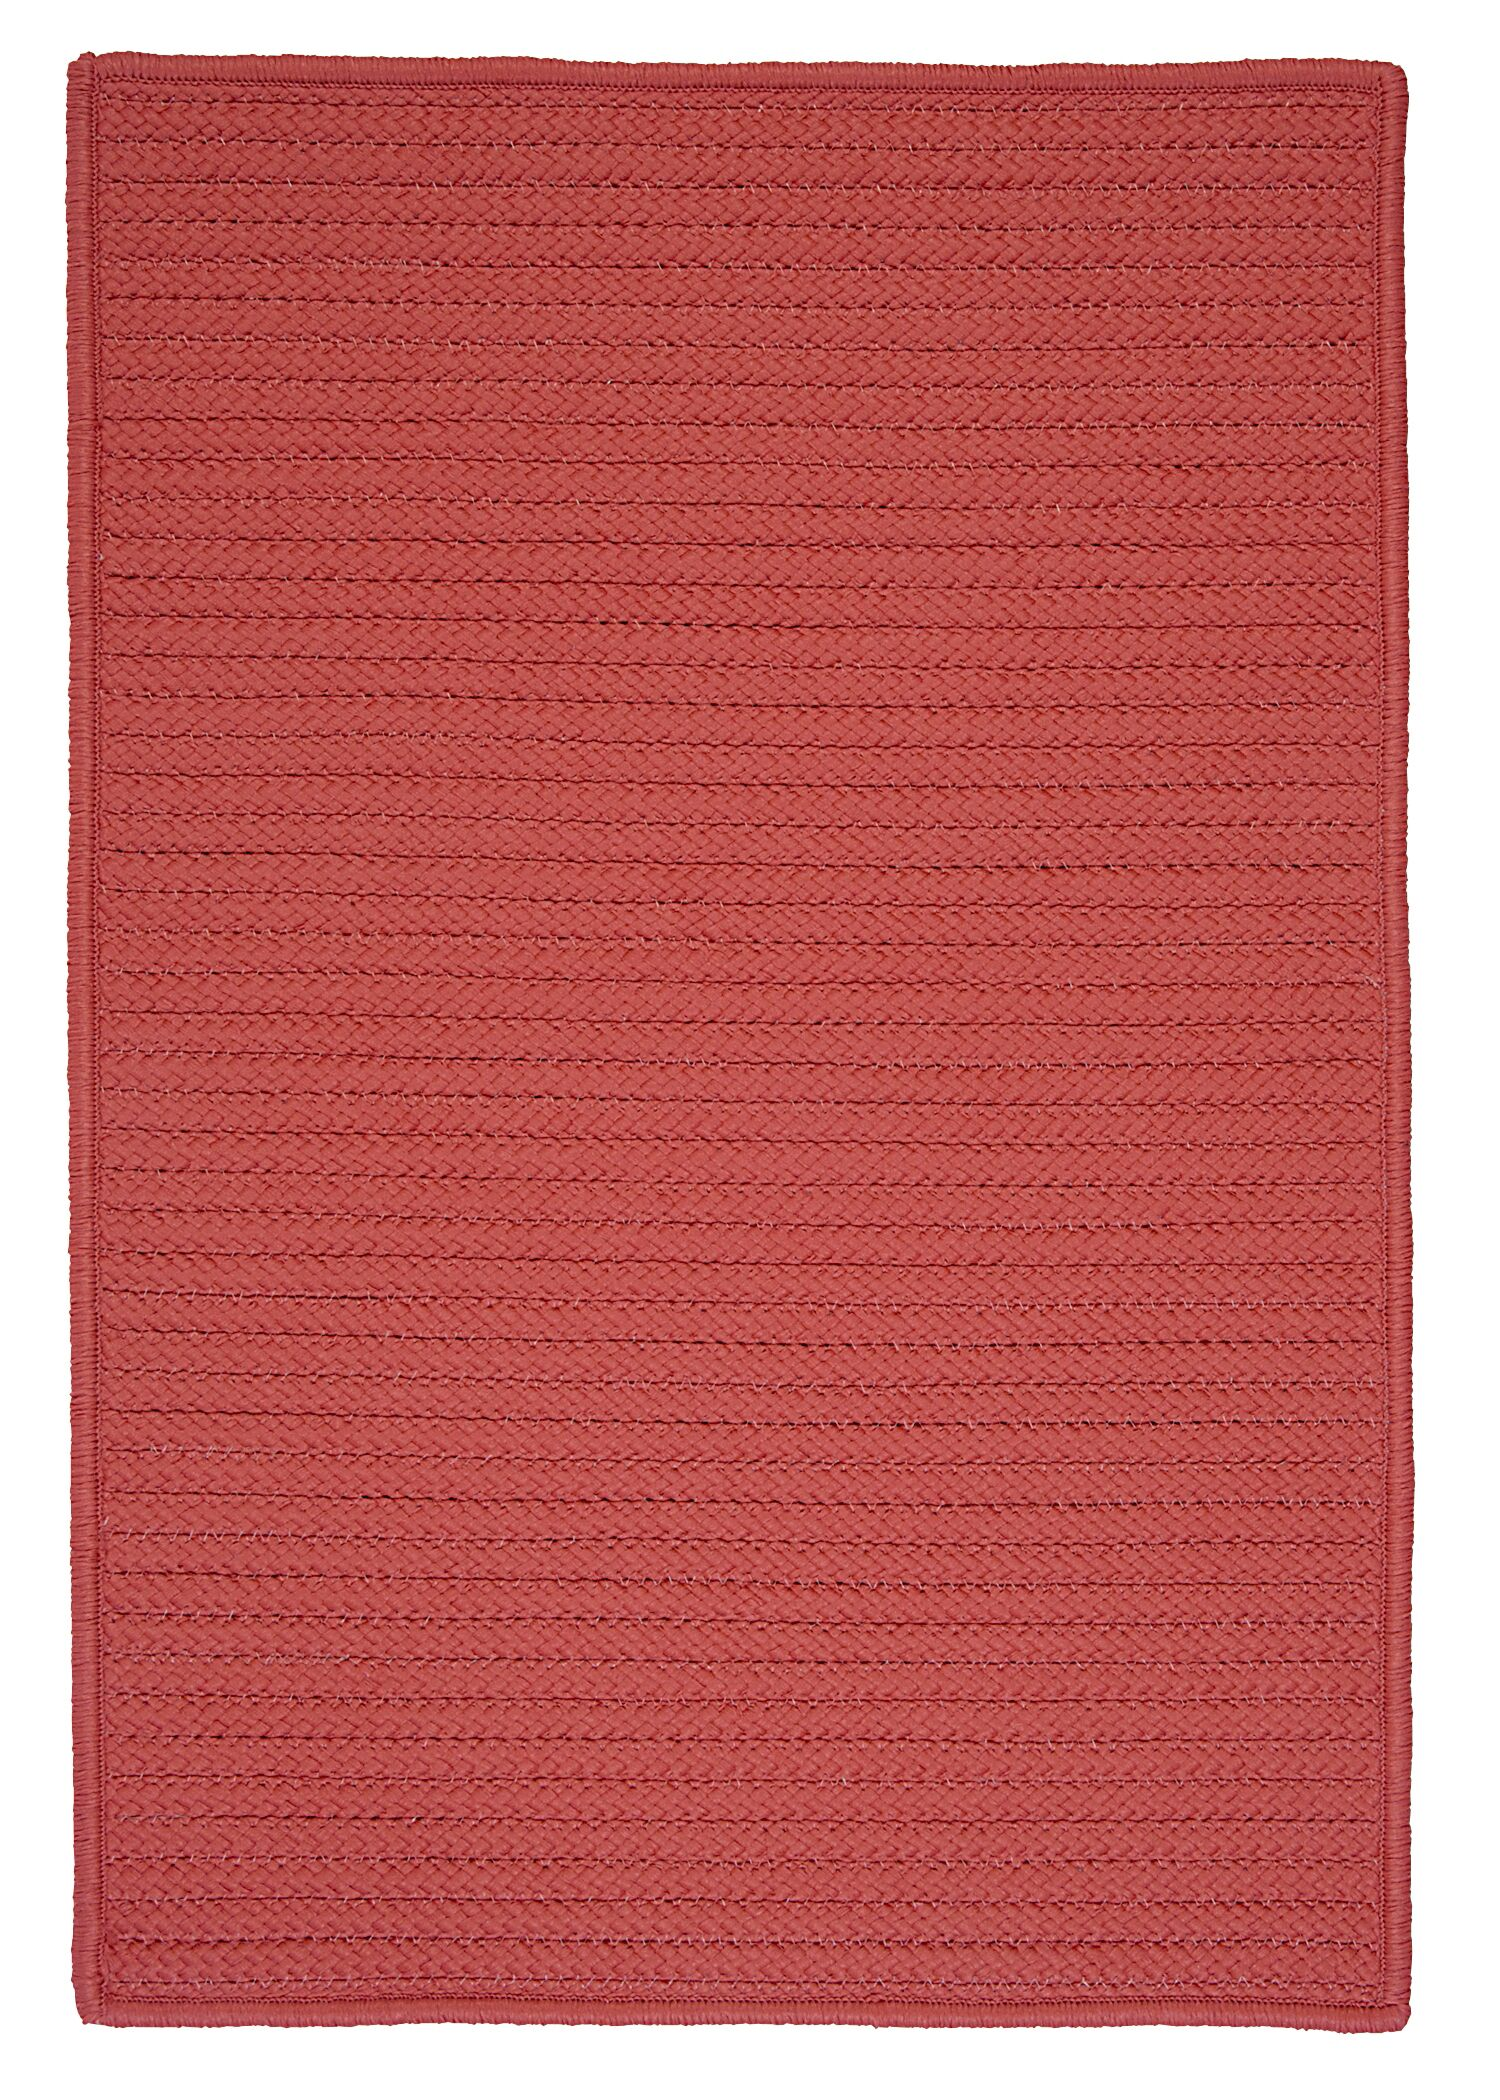 Gilmour Indoor/Outdoor Area Rug Rug Size: Rectangle 10' x 13'